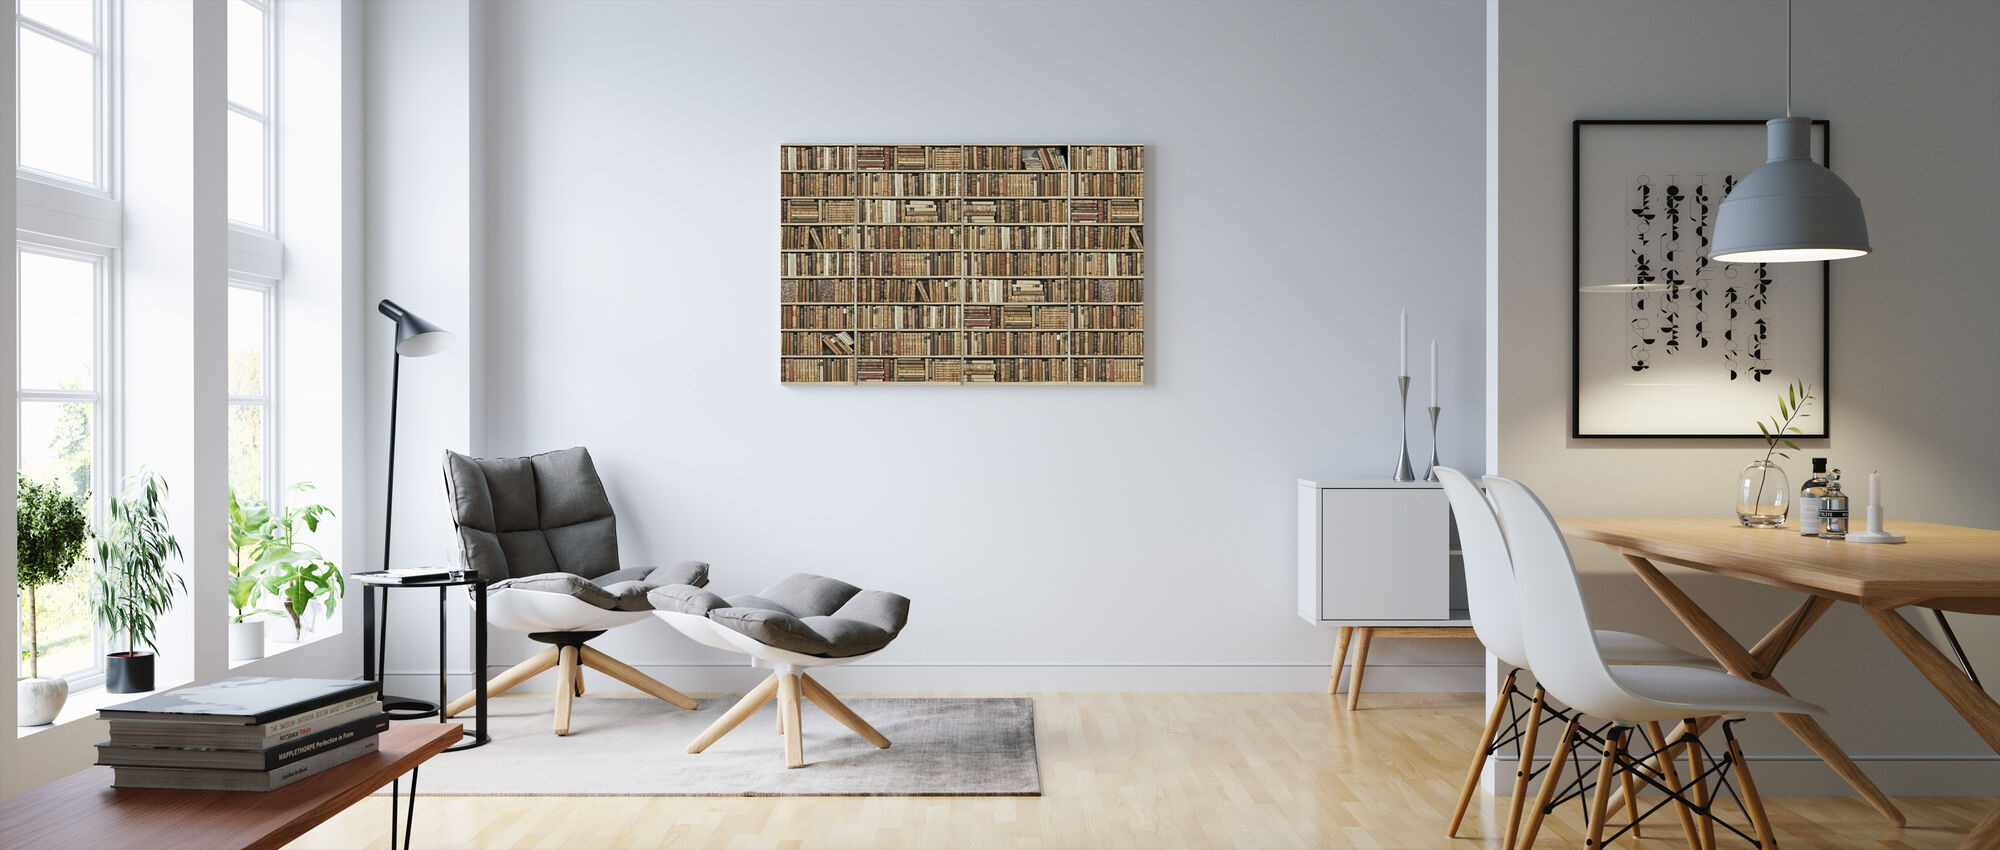 Bookshelf - Wooden - Long - Beige - Canvas print - Living Room